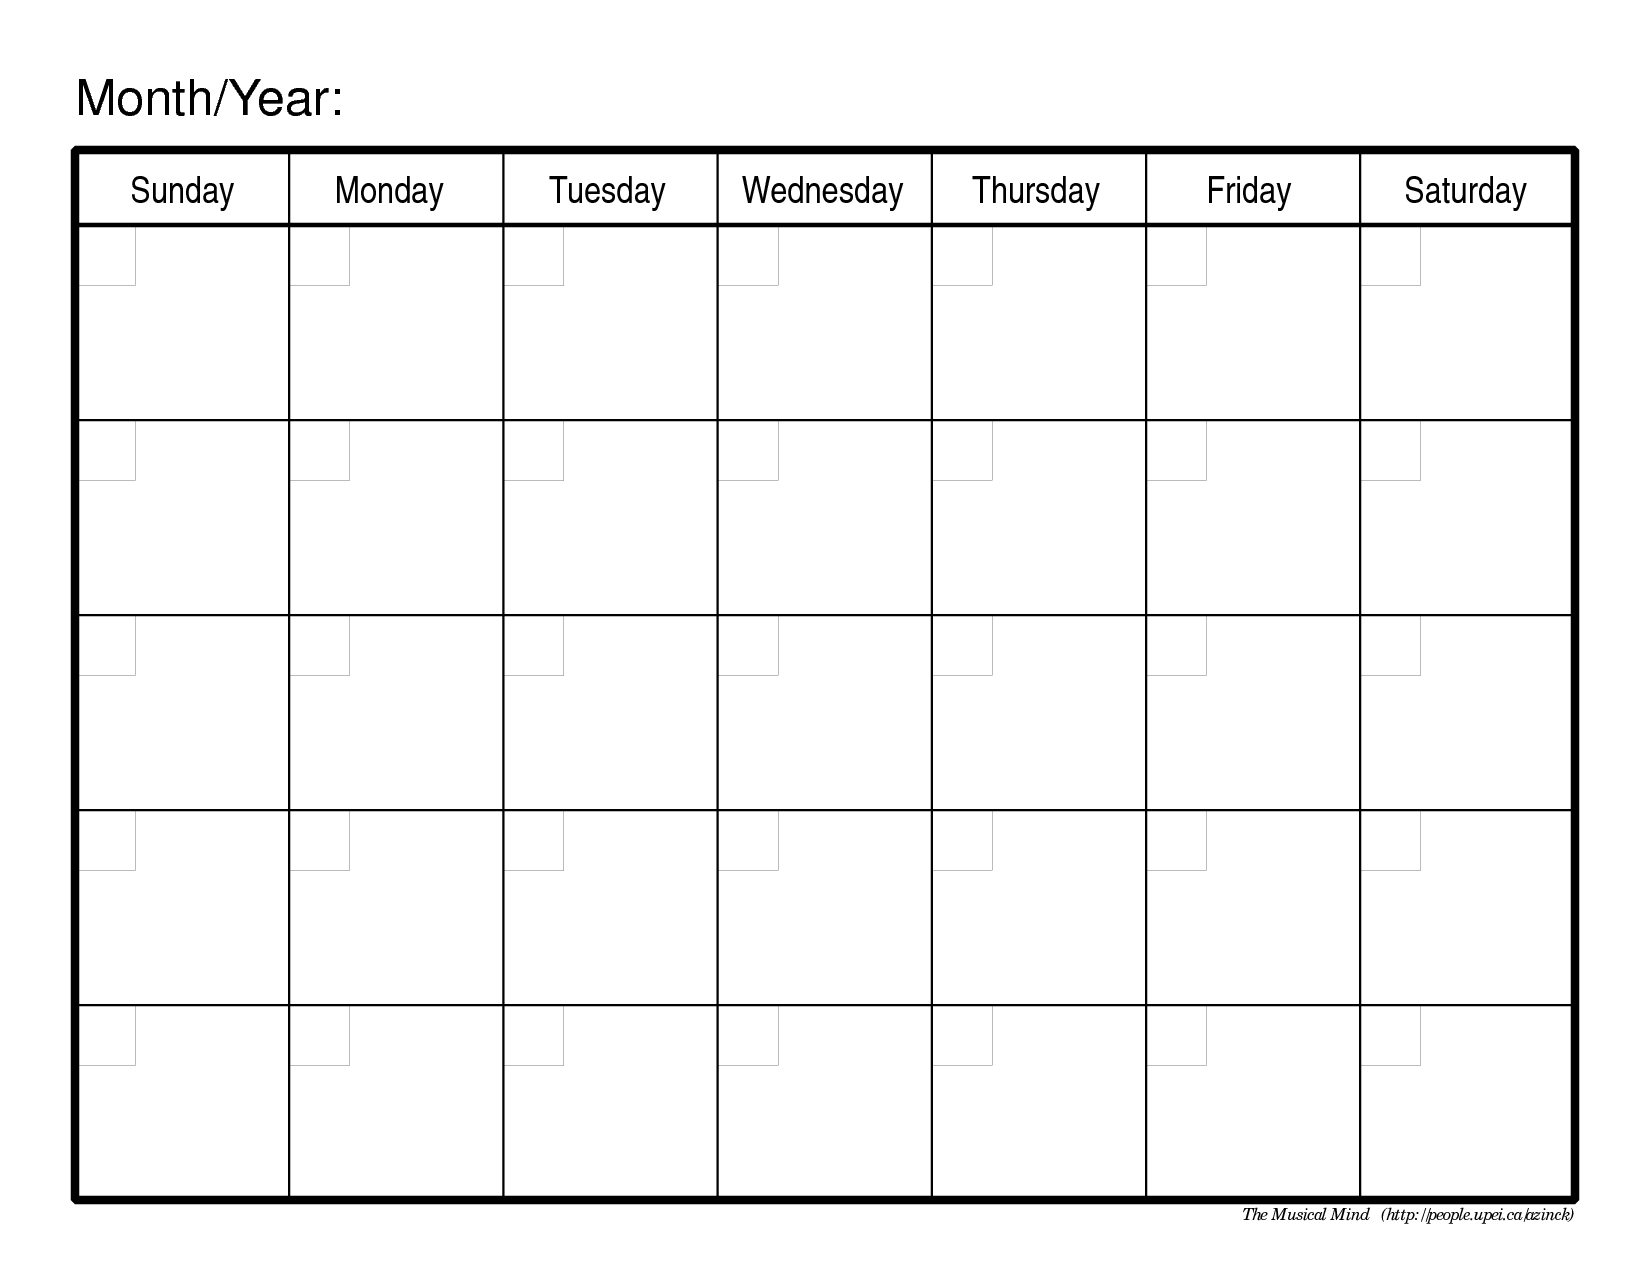 Calendar Templates Printable Free Fieldstation.co | Self Discovery with regard to Free Monthly Calendar Template